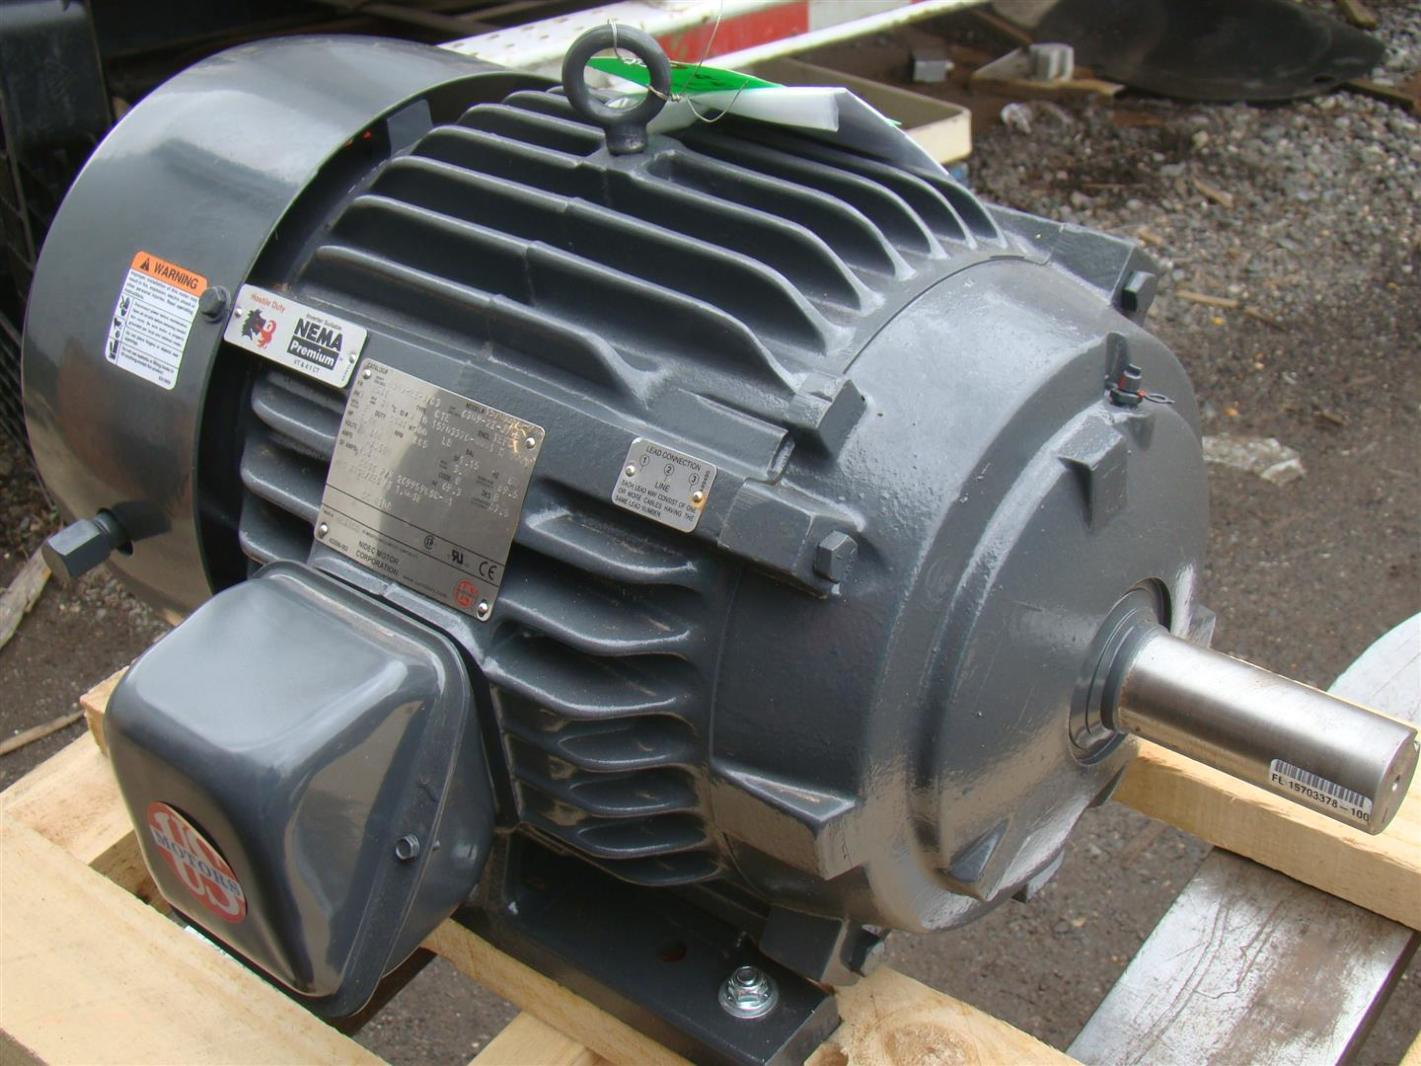 Us motors nidec 3 phase electric motor 5 hp 885 rpm model for Electric motor 100 hp